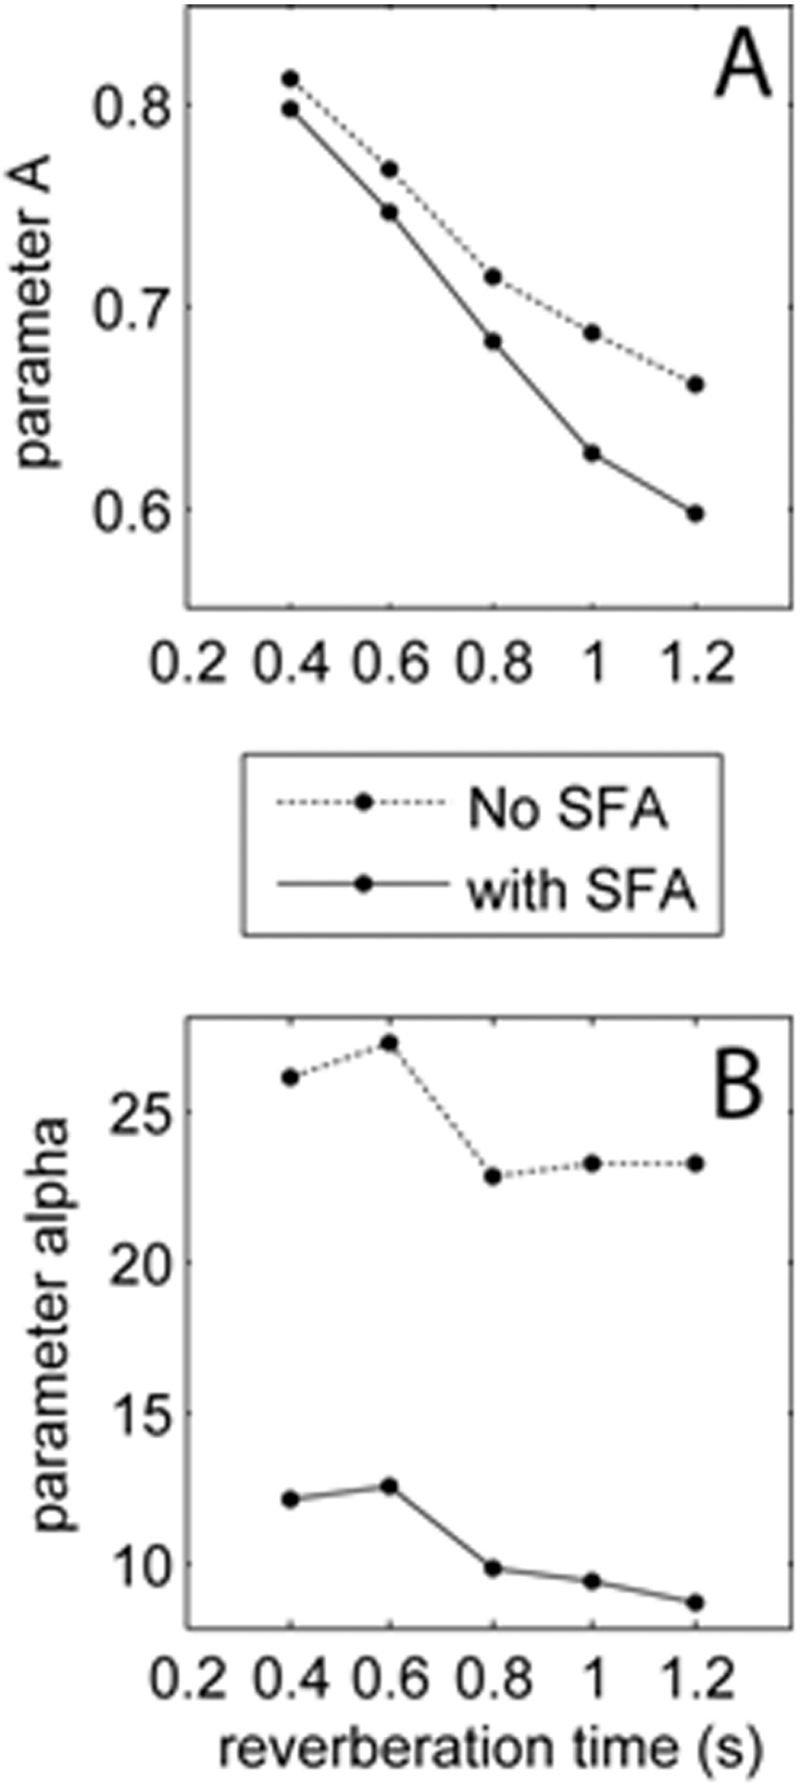 Figure 6: How model parameters controlling the models curvature (parameter <i>α</i>) and <i>y</i>-intercept (parameter <i>A</i>) are affected by reverberation time and activating the SFA